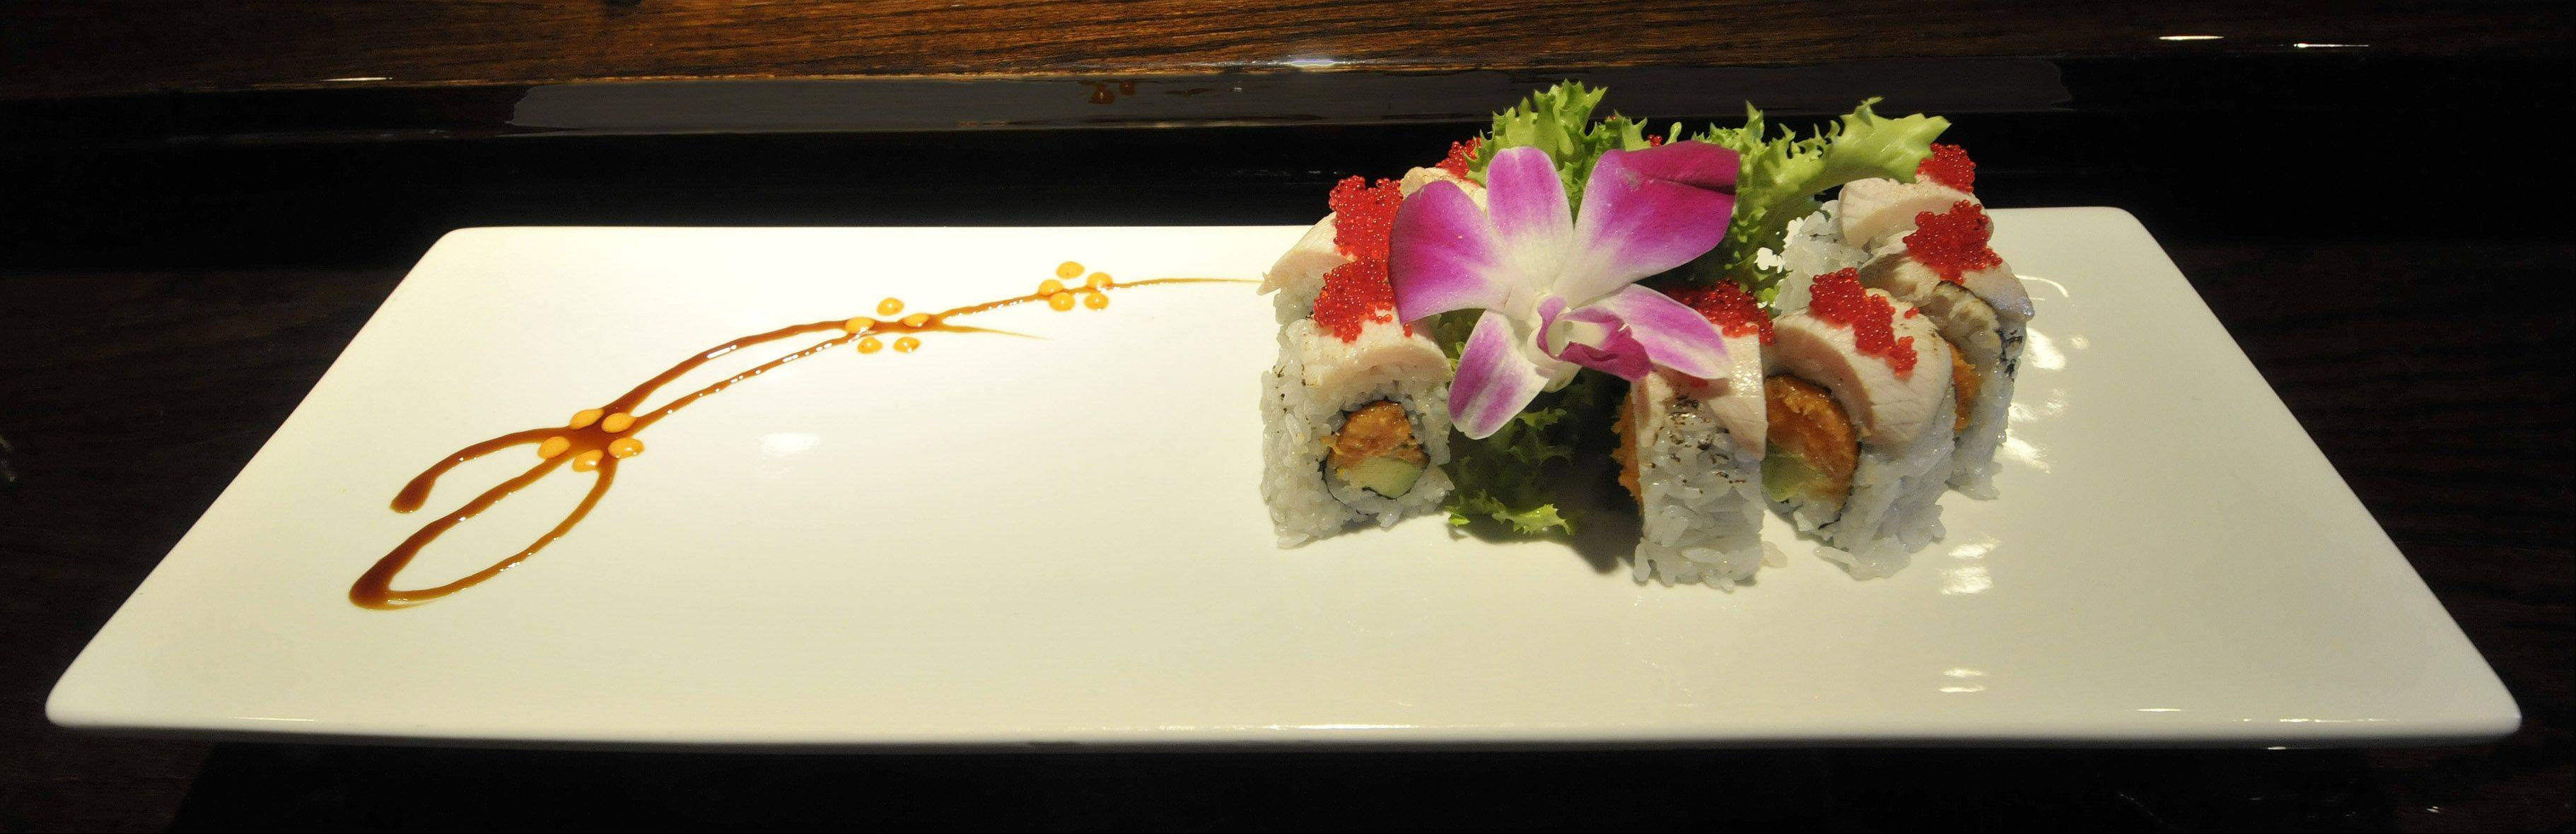 A variety of fancy sushi creations, including the Bulls Roll, are on the menu at Dao.